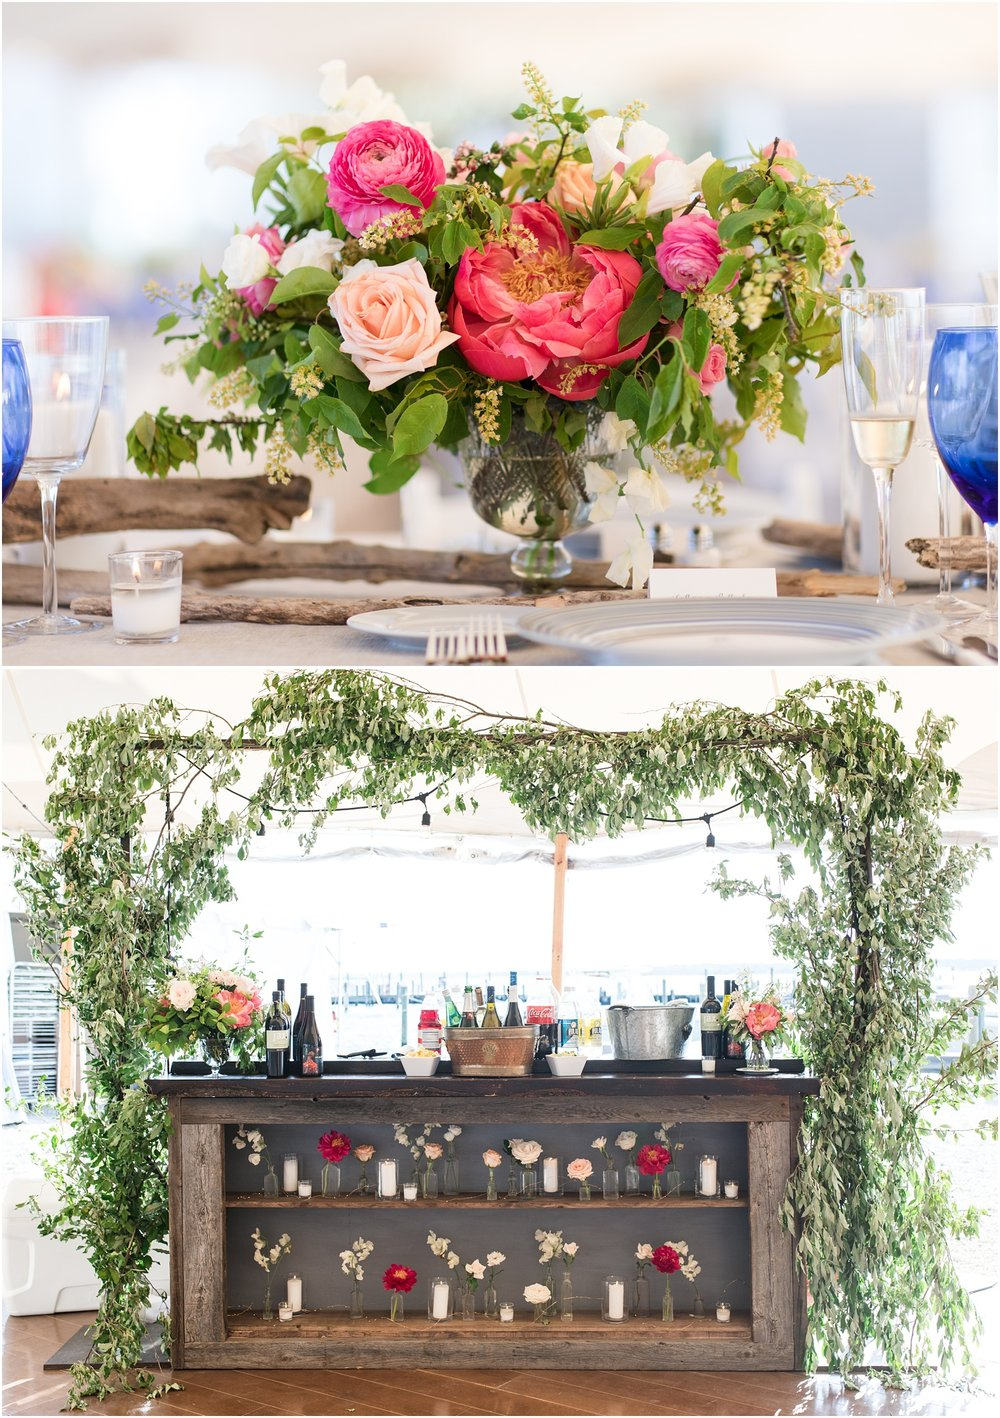 Photo of wooden and floral bar setup by Faye and Renee at Mantoloking Yacht Club.